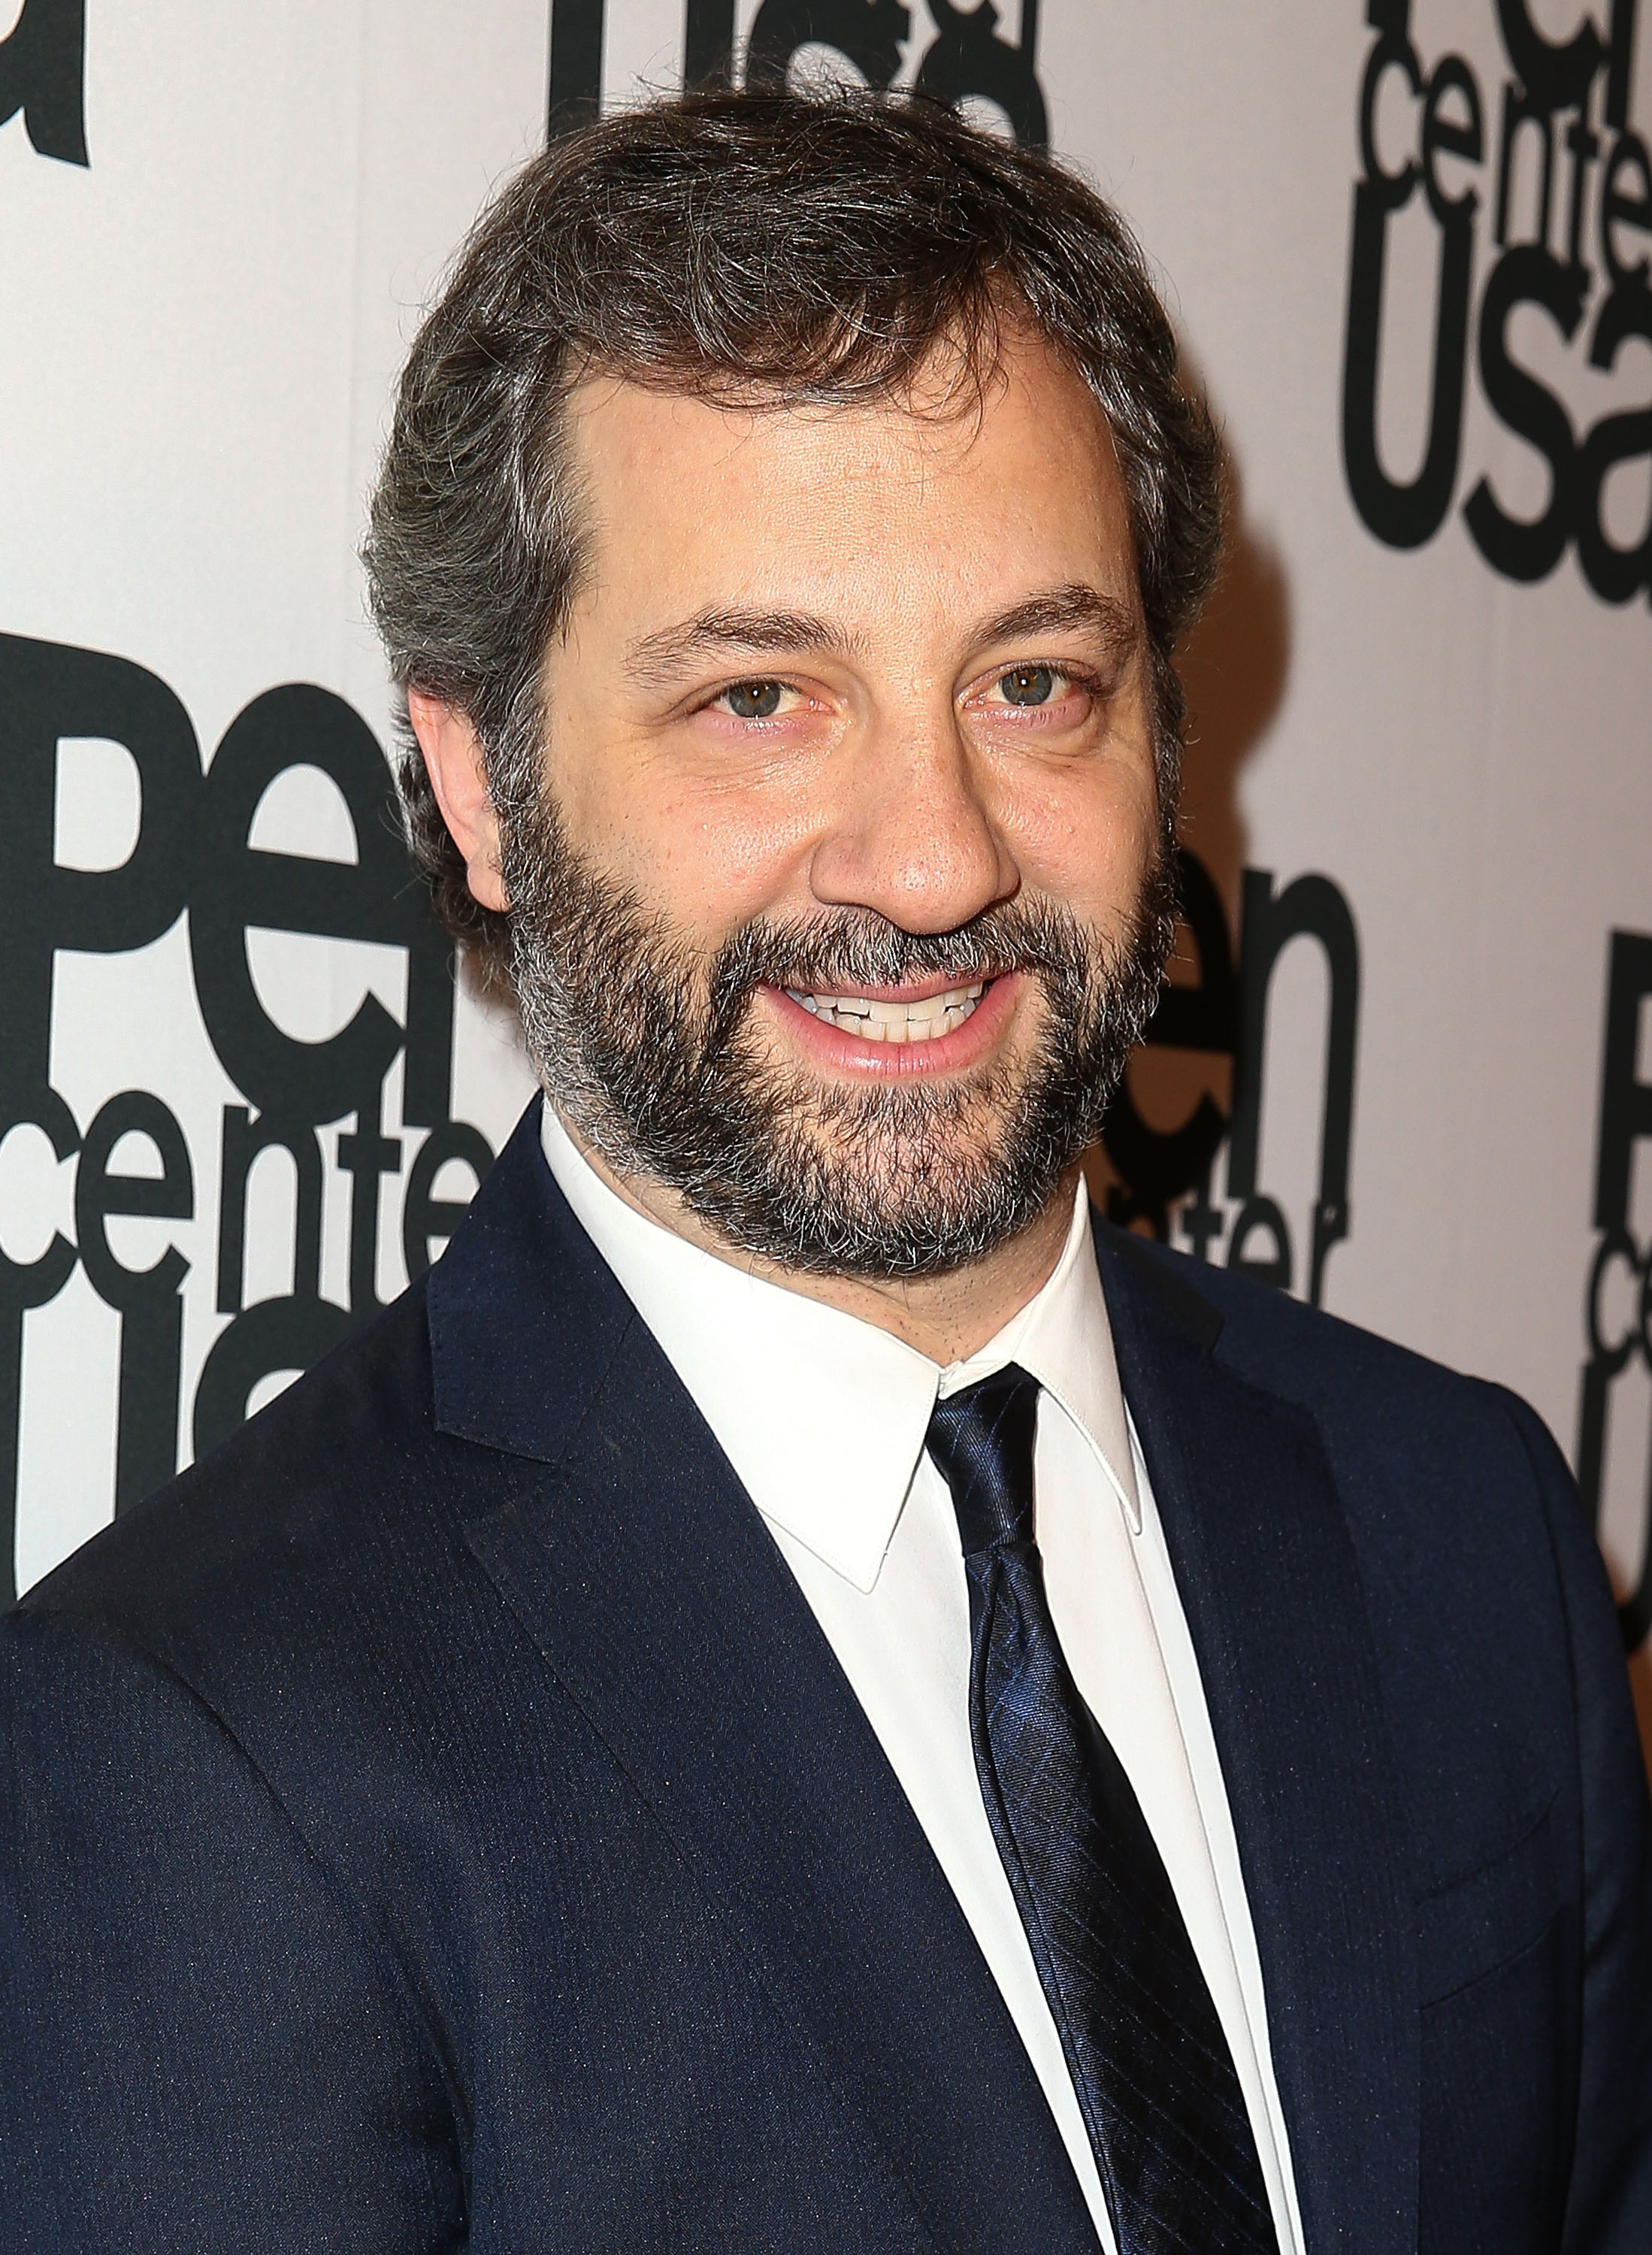 Director Judd Apatow attends PEN Center USA's 24th Annual Literary Awards Festival honoring Norman Lear at Regent Beverly Wilshire Hotel on November 11, 2014 in Beverly Hills, California.